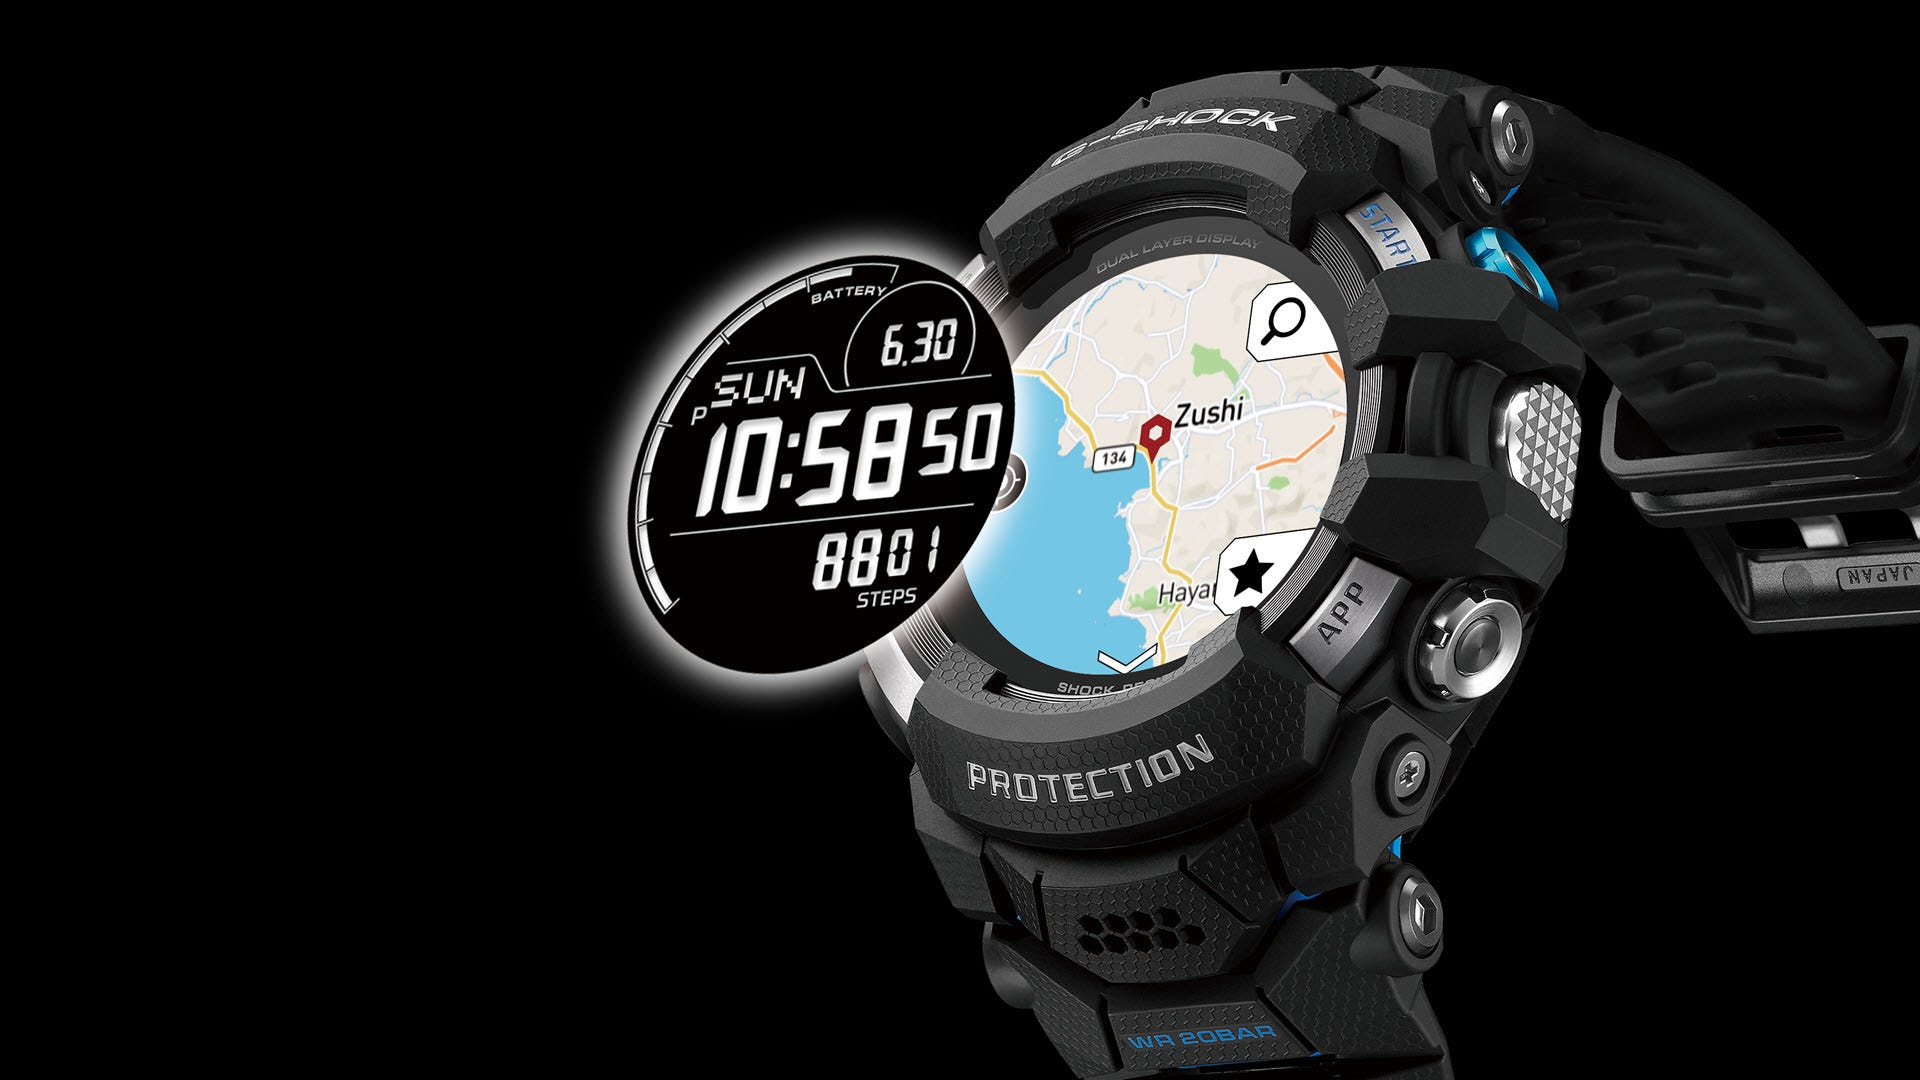 A Casio Wear OS G-Shock watch with various watch faces.